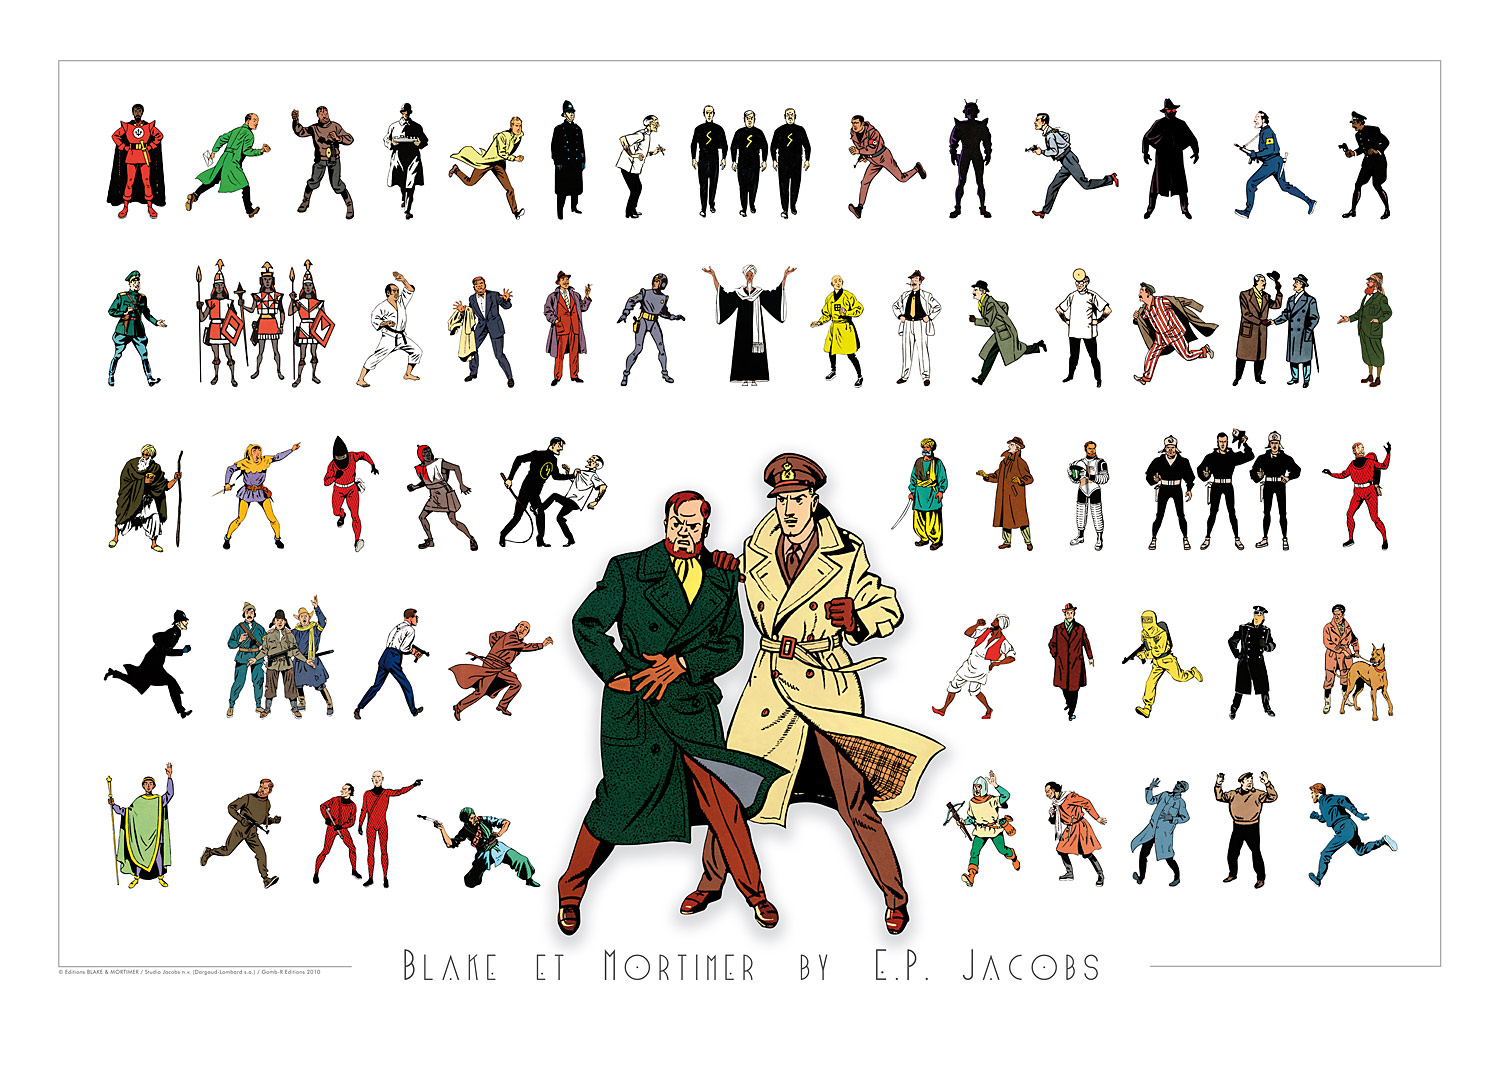 Blake et Mortimer by E. P. Jacobs